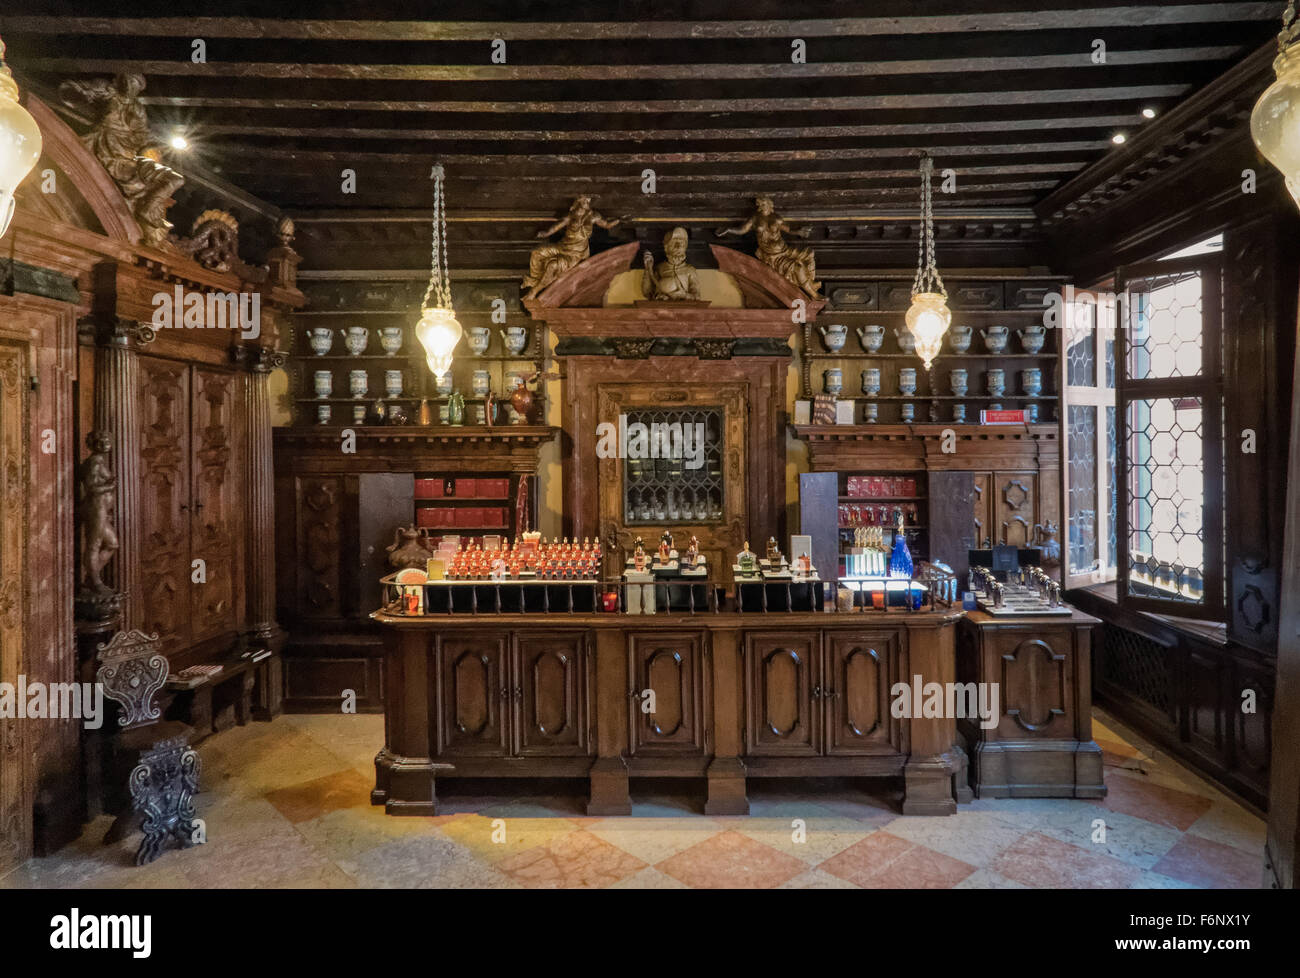 Oldest pharmacy in Venice on the Strada Nuova. The apothecary room is decorated with majolica vases and carved walnut Stock Photo